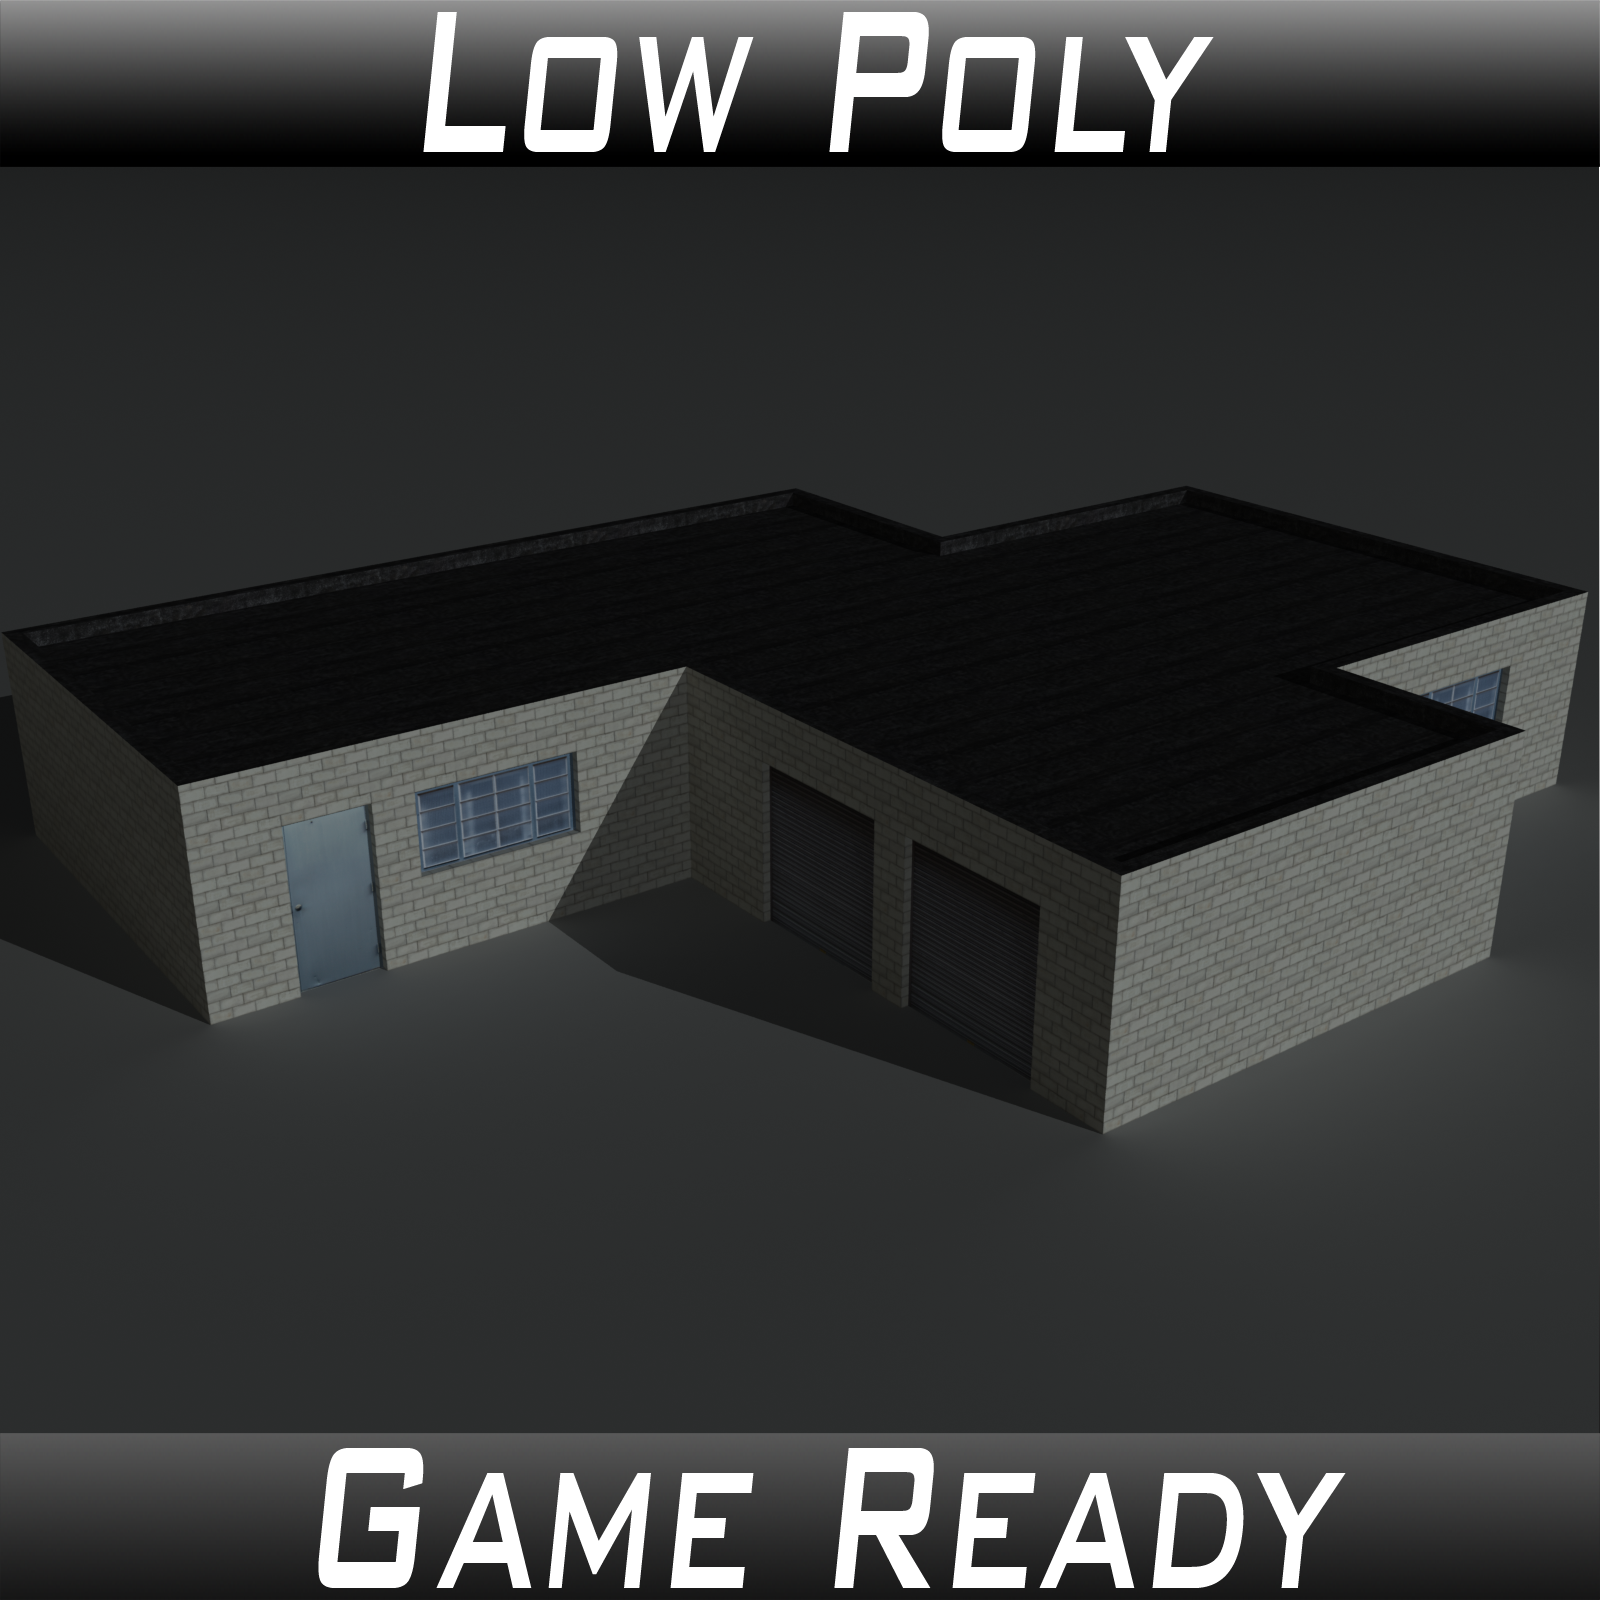 Low Poly Factory Building 1 - Extended Licence